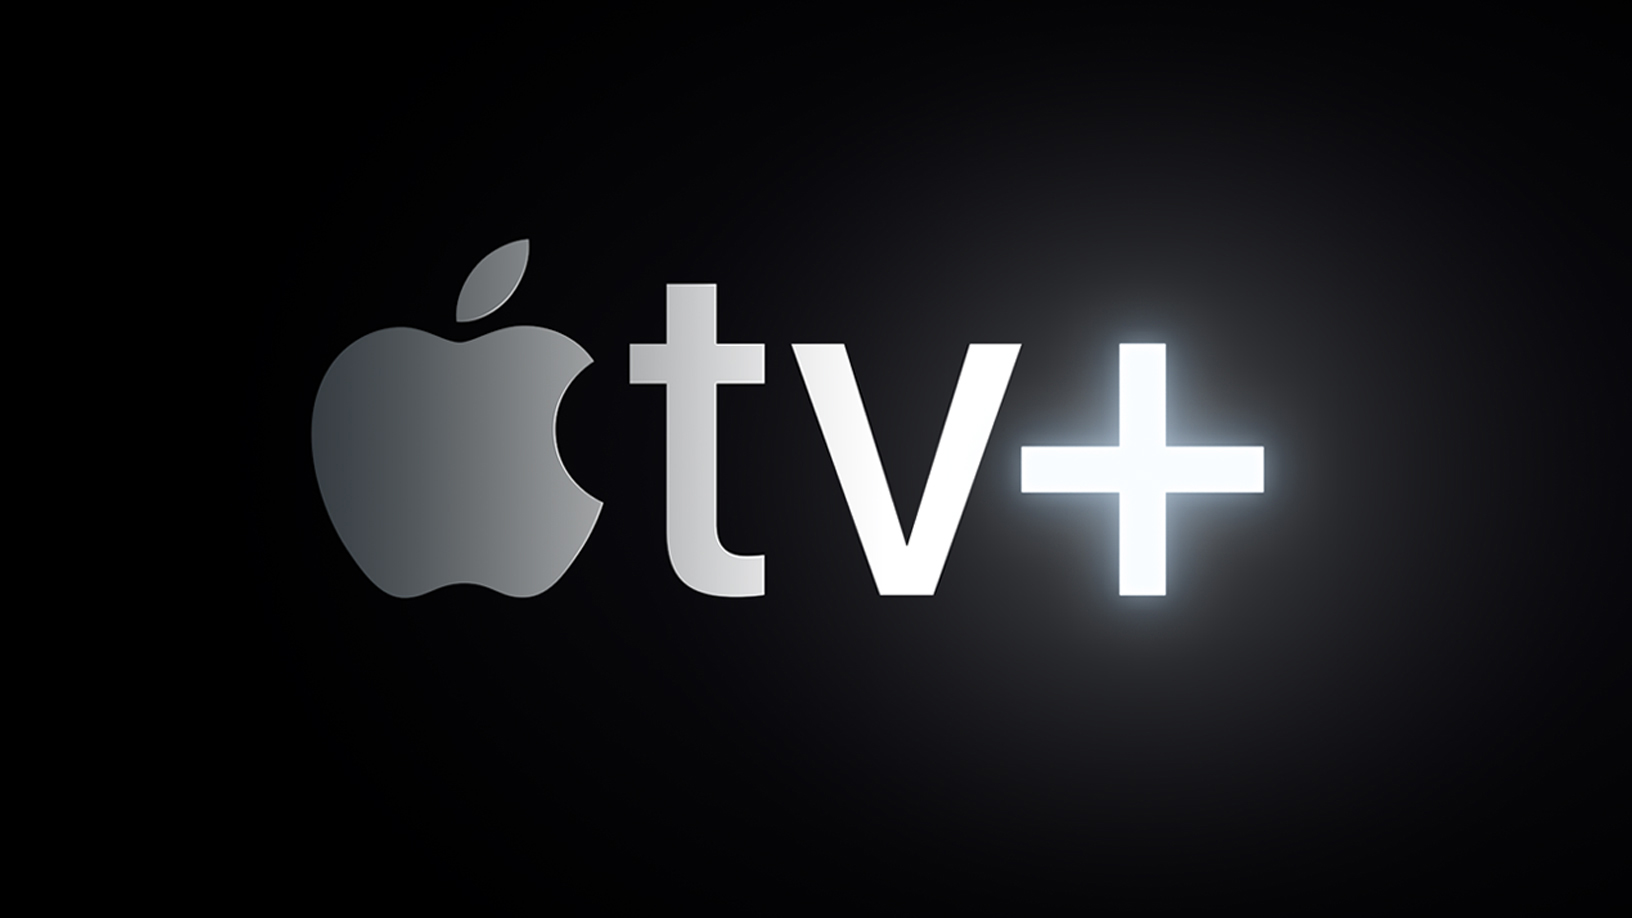 Apple Introduces Apple Tv Plus 03252019